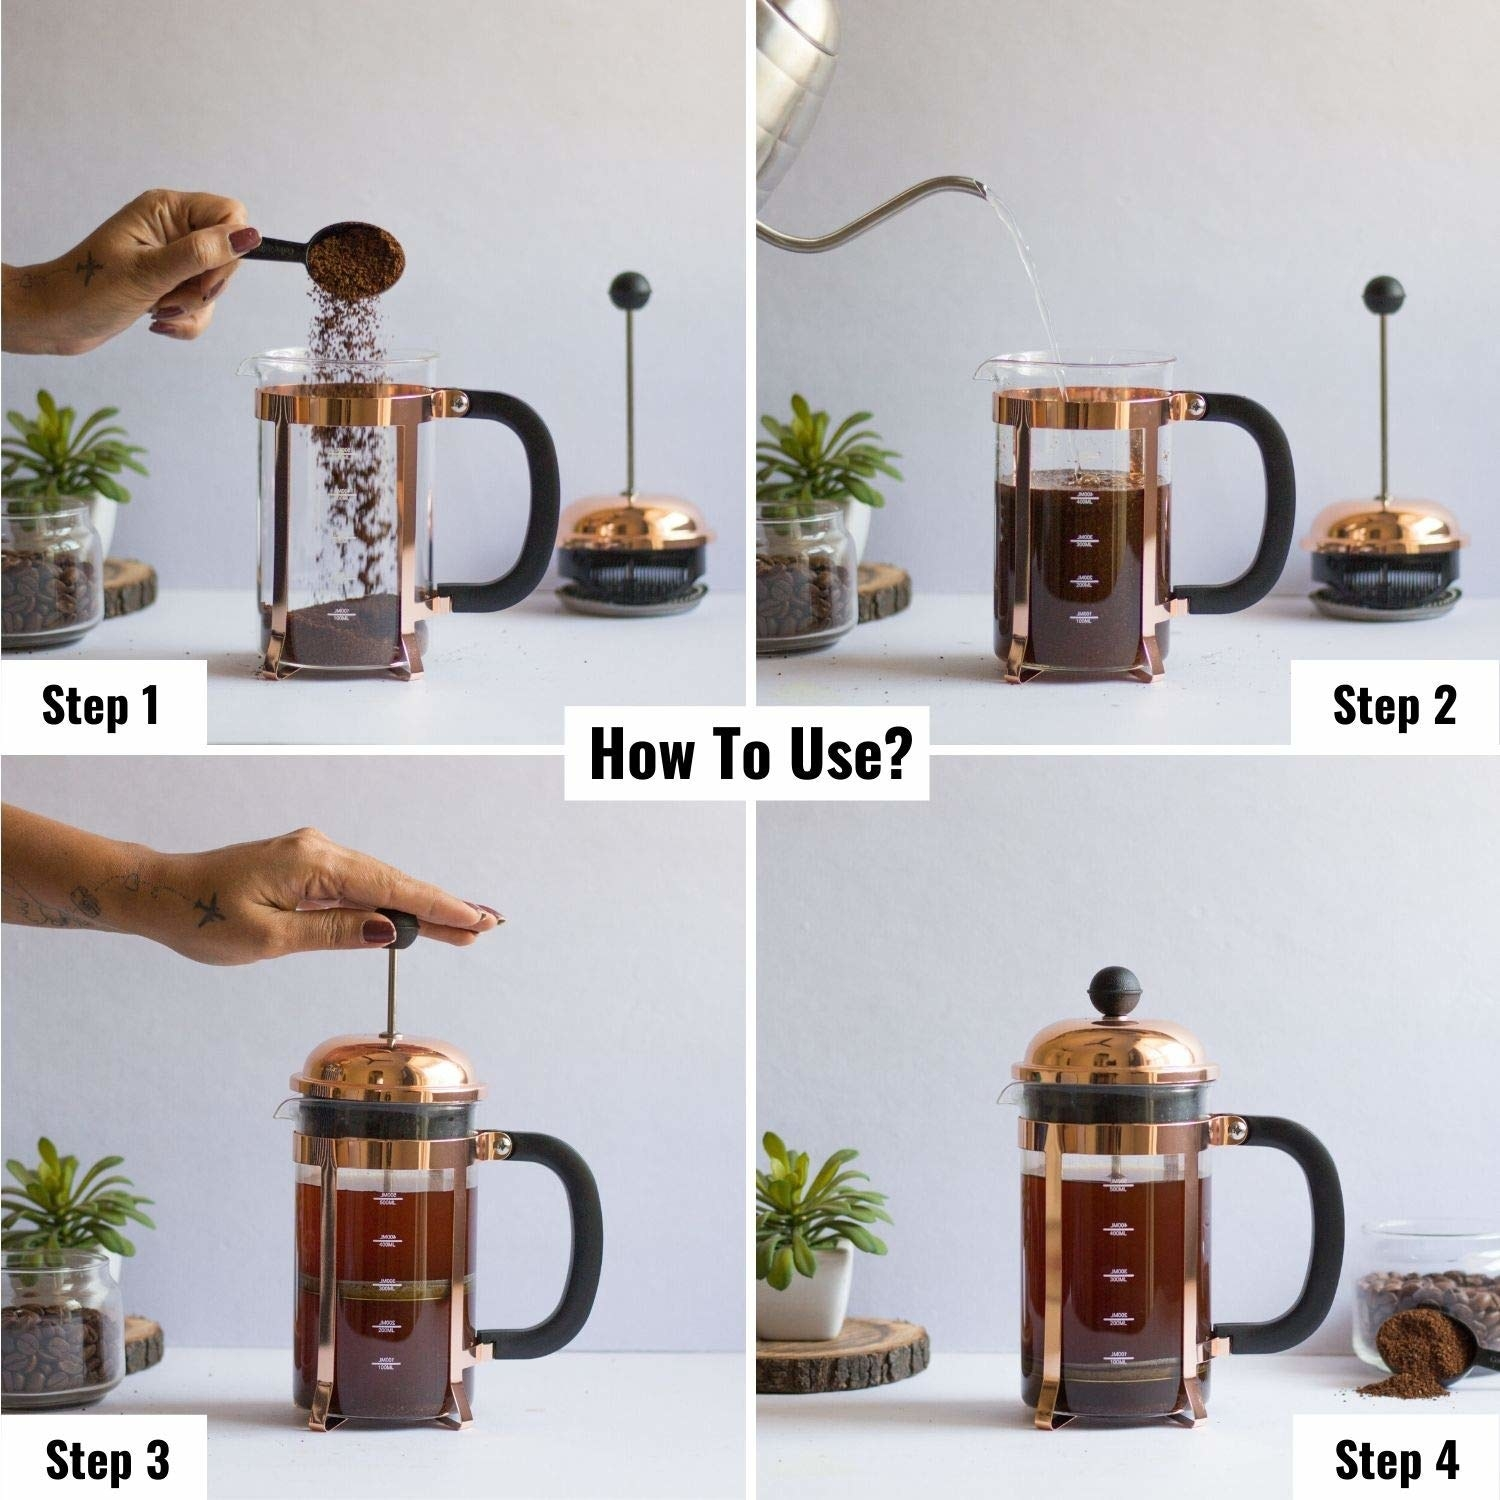 The image show us the steps to use the French Press coffee maker